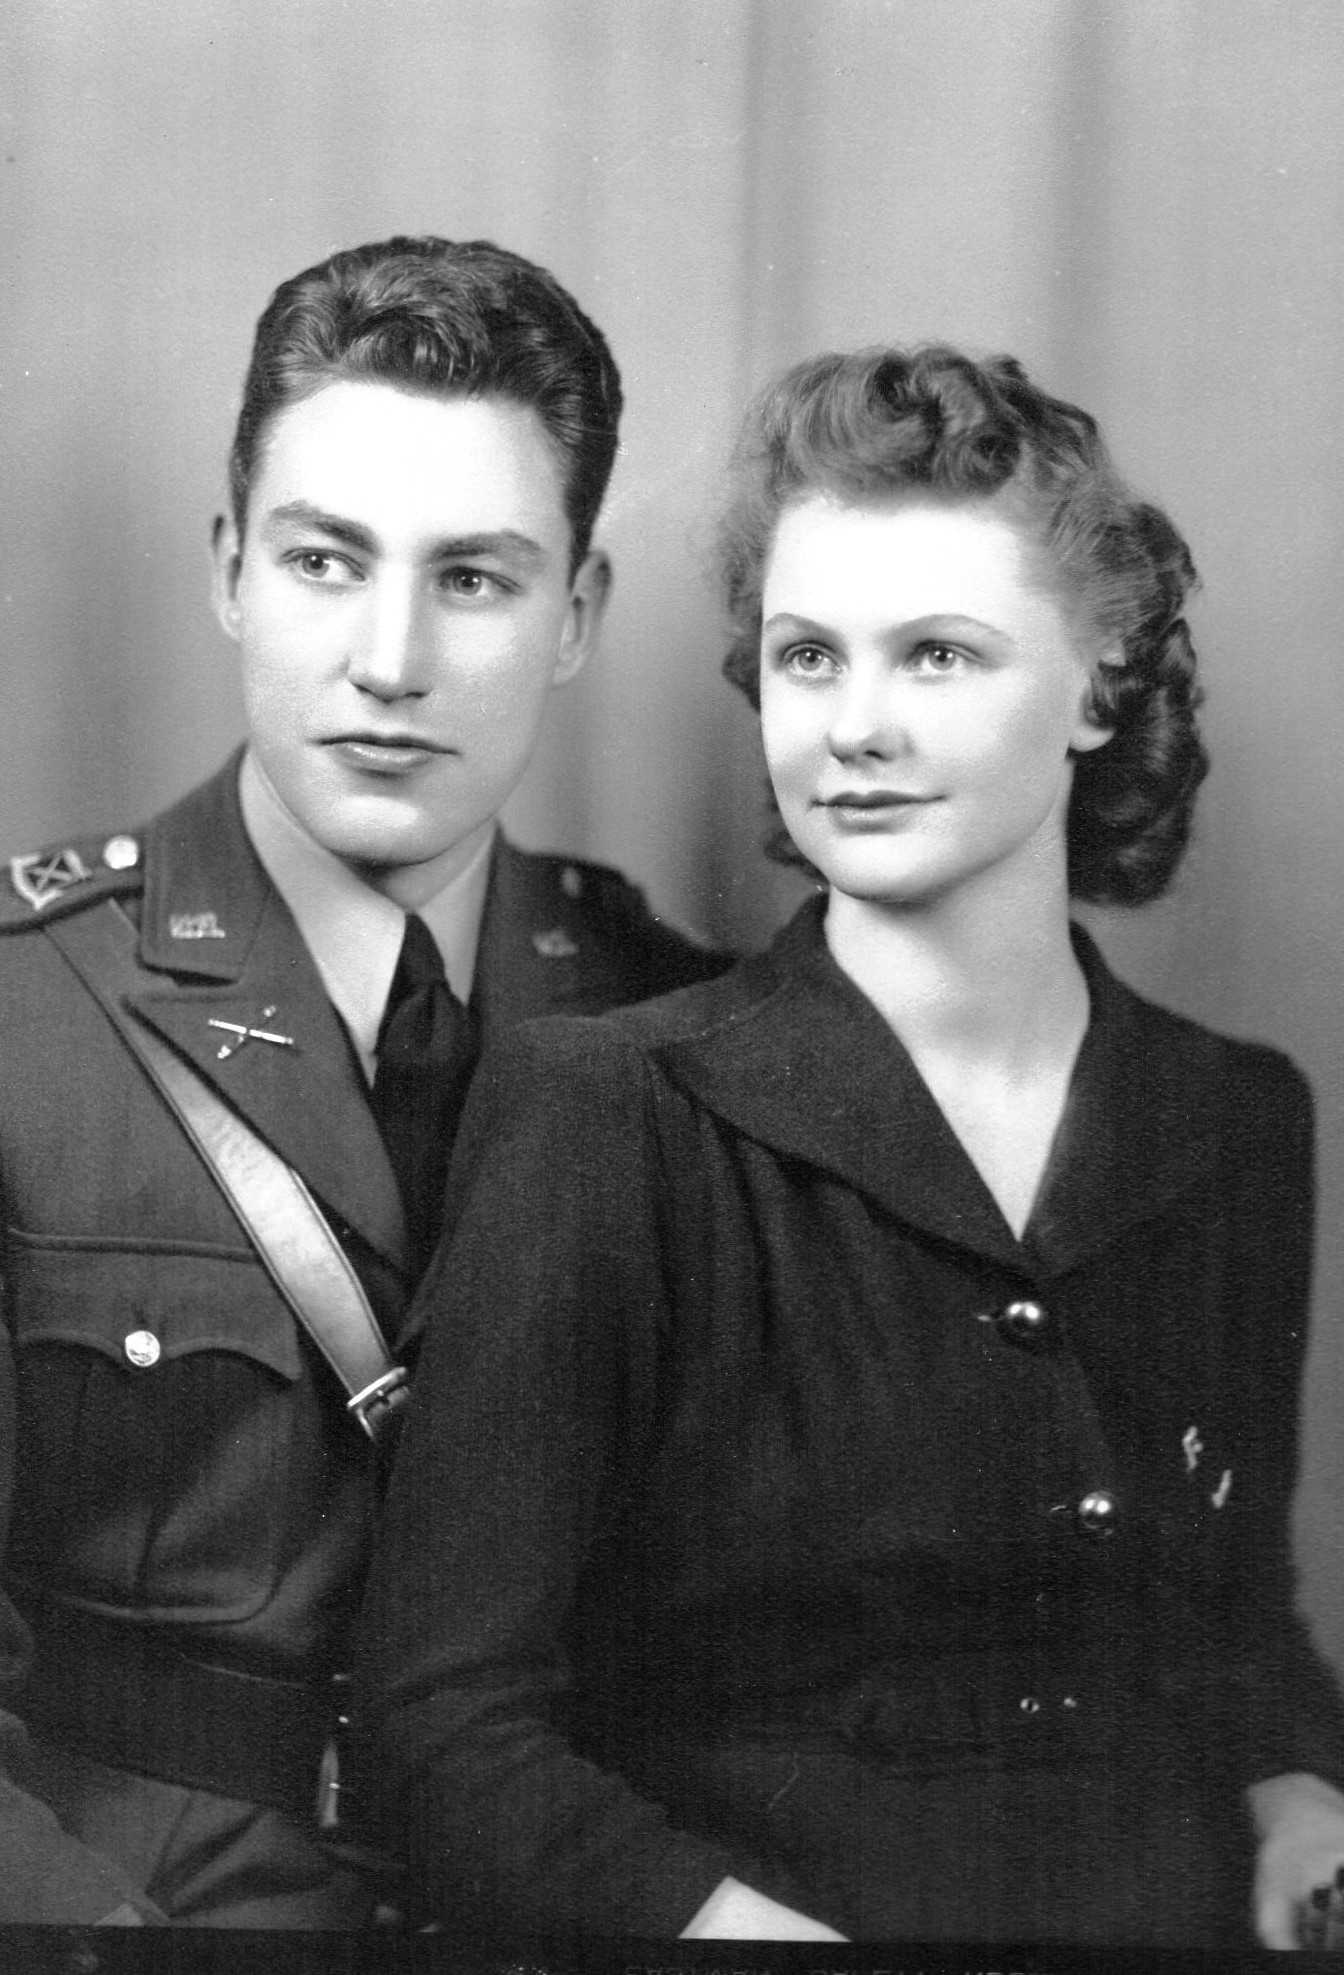 Just after graduation, Dell made second lieutenant in the US Army. While fighting in Europe, Doris had their daughter Diane.